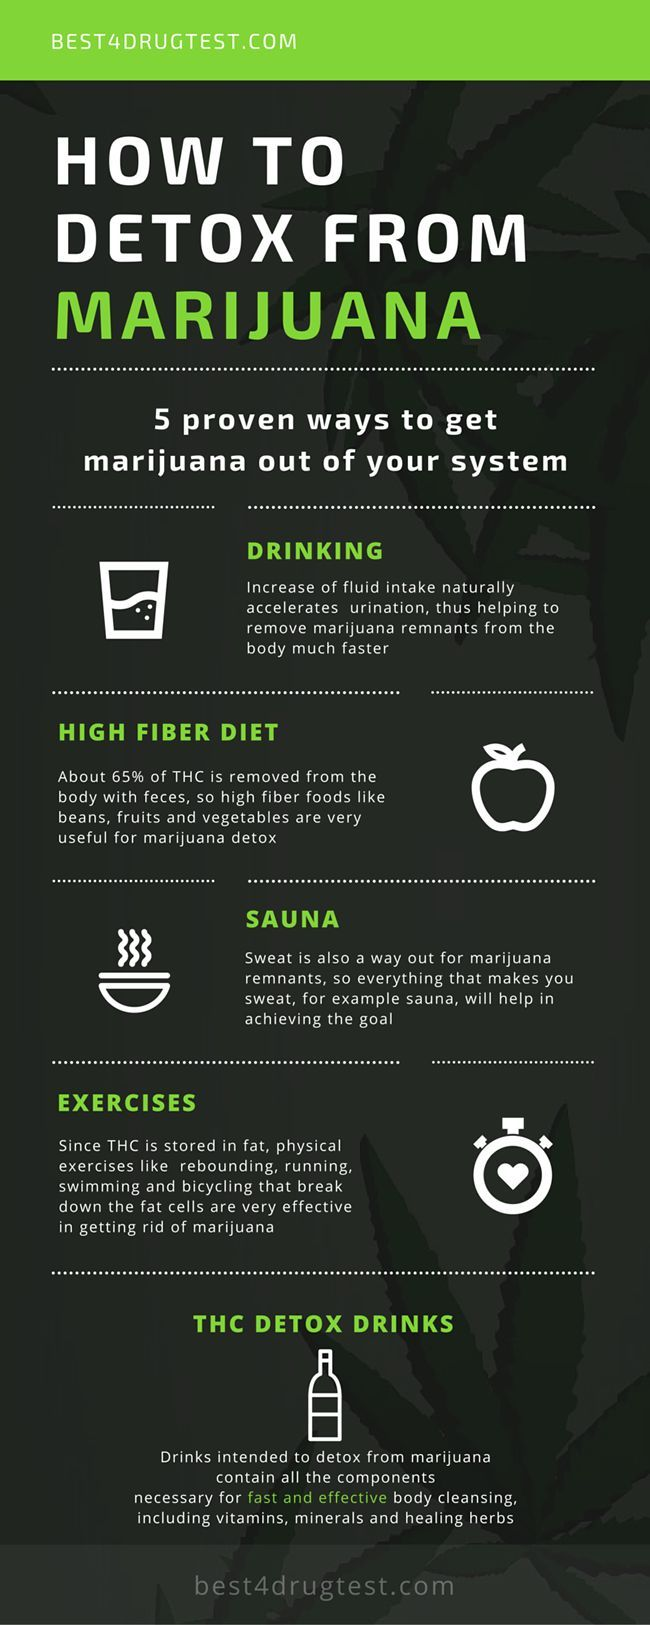 5 ways to detox from marijuana